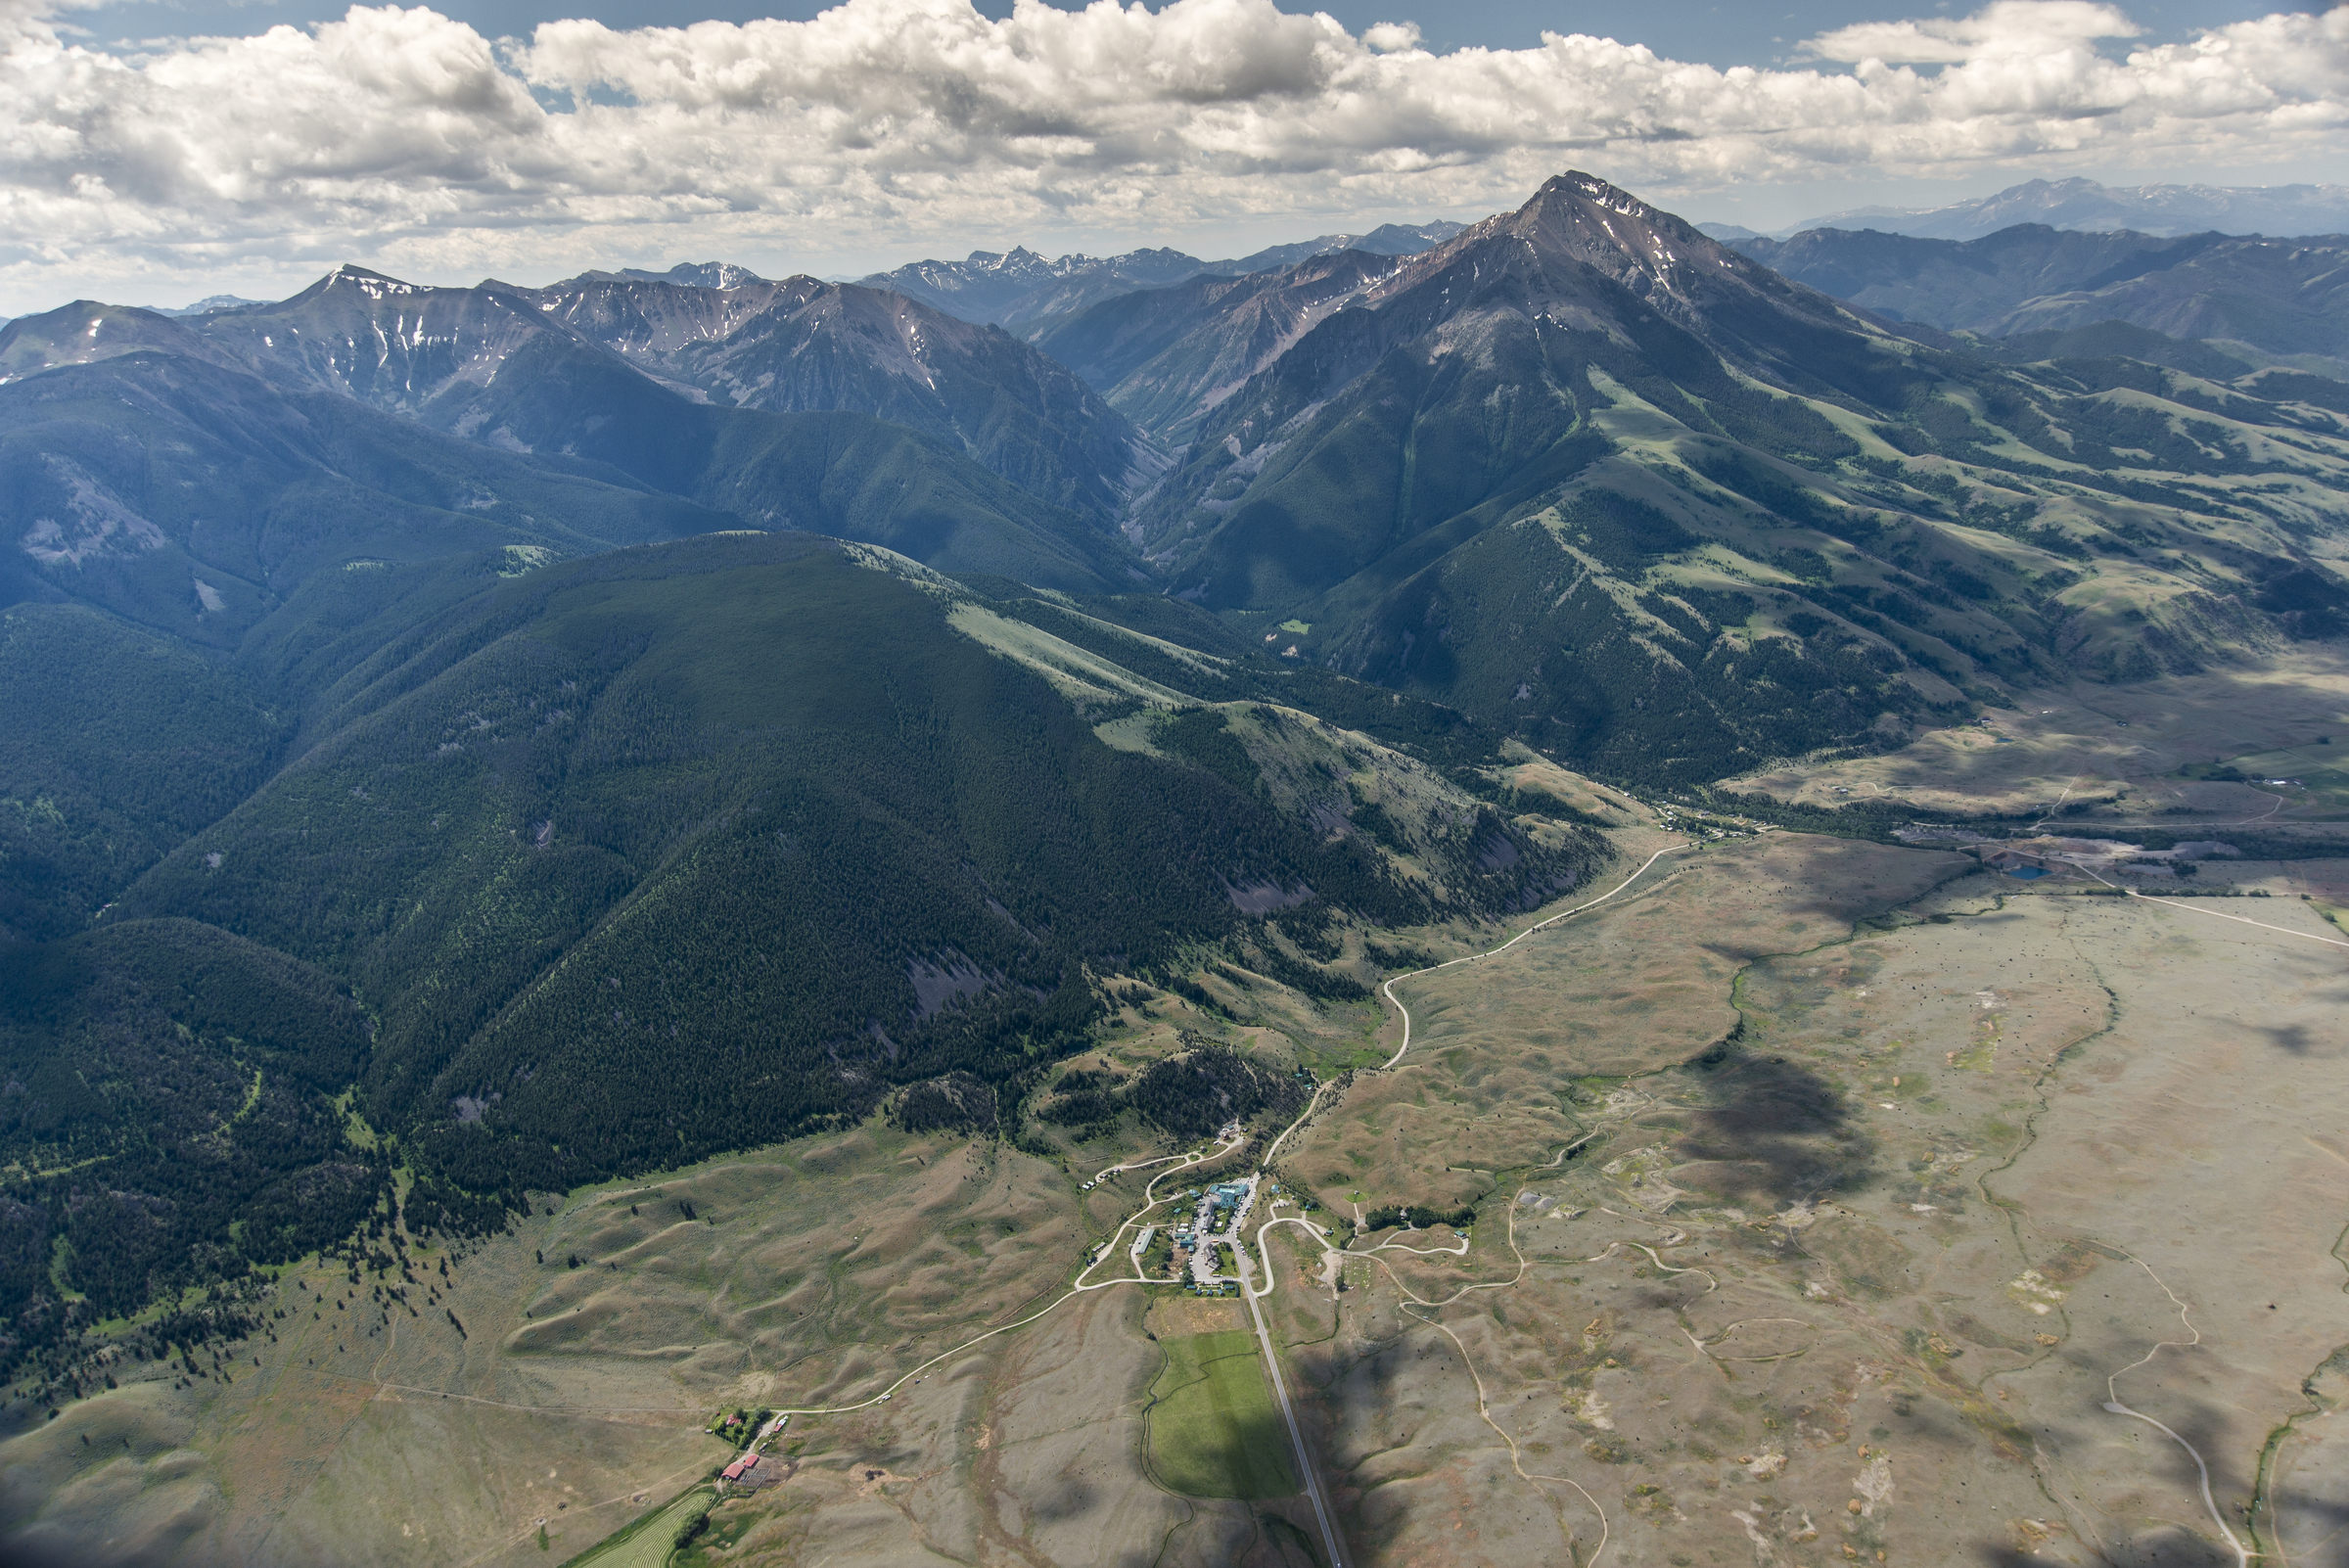 Emigrant Peak (right) and its namesake gulch north of Yellowstone are where a Canadian gold mining company has staked 2,500 acres of mining claims. Montana's biggest newspaper is supporting local businesses that want to protect current jobs from potentially toxic and industrial gold mines. (Photo William Campbell.)